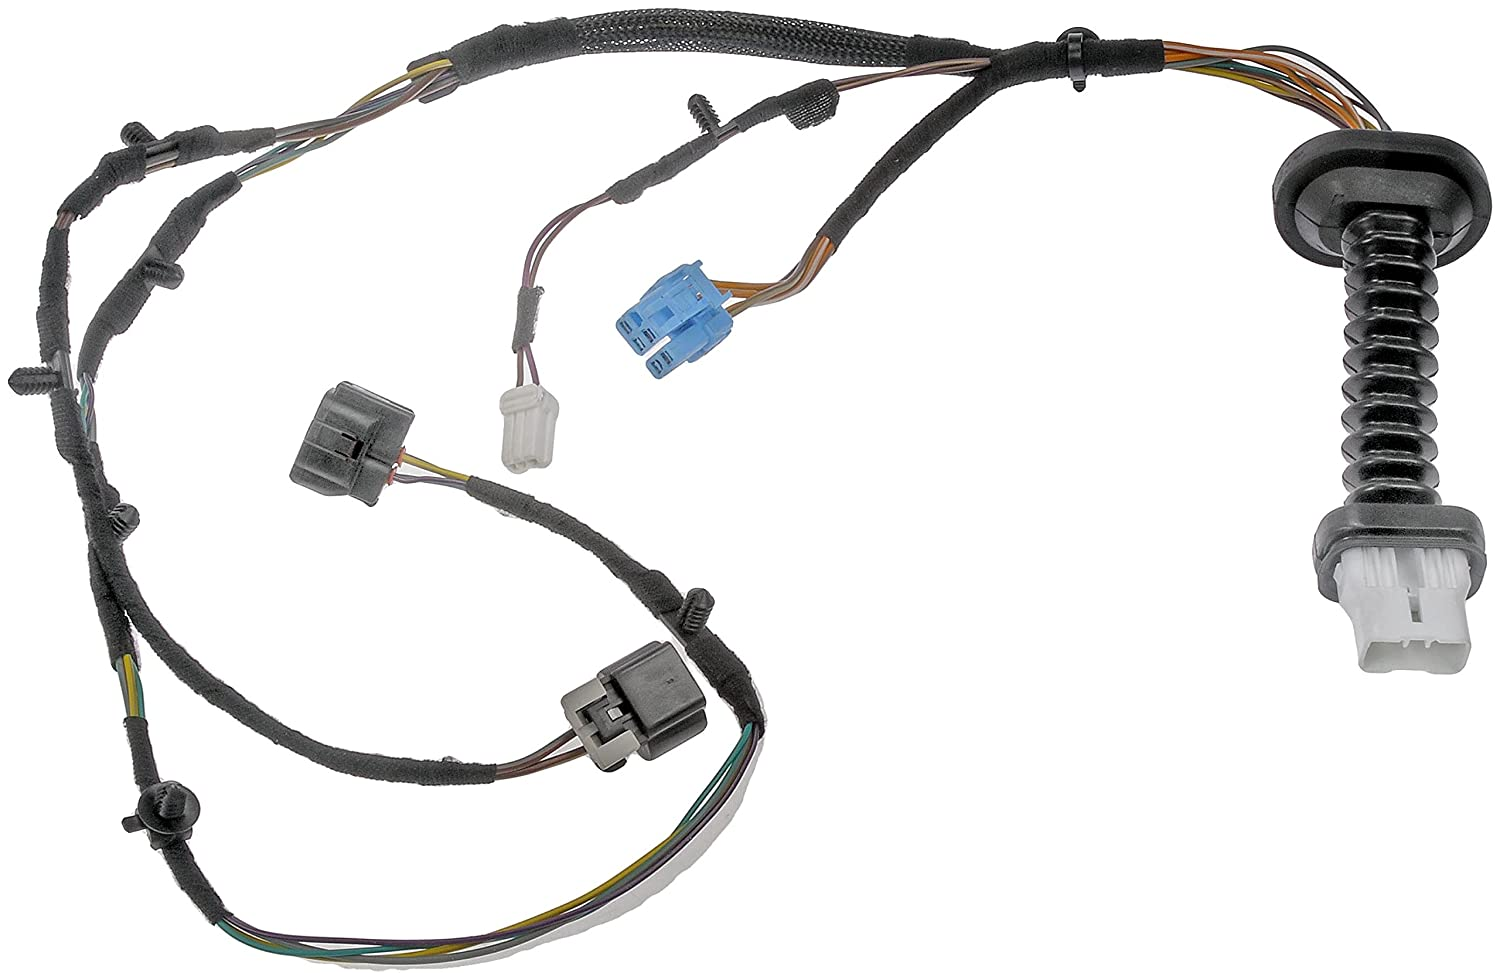 81c1LCEp7lL._SL1500_ amazon com dorman 645 506 door harness with connectors automotive Dodge Transmission Wiring Harness at panicattacktreatment.co